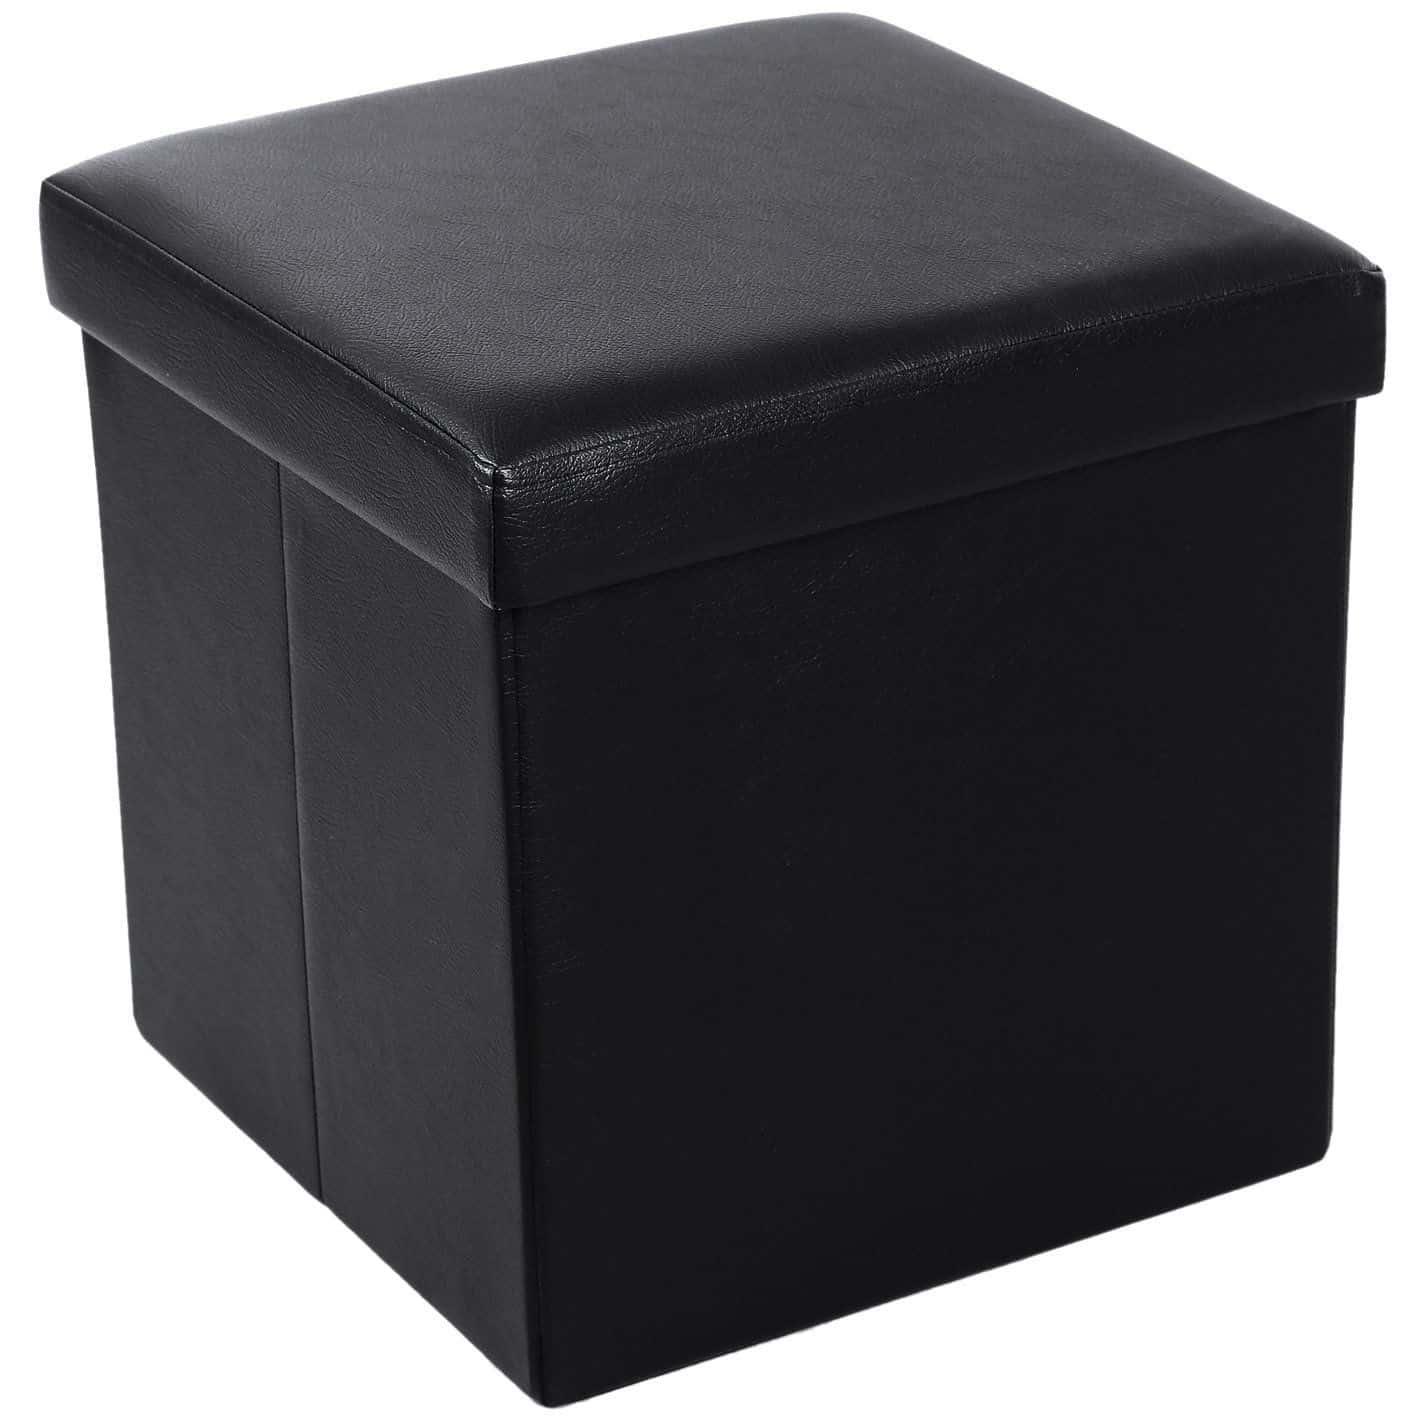 Cube Storage Ottoman Made With Faux Leather And Foldable Function.